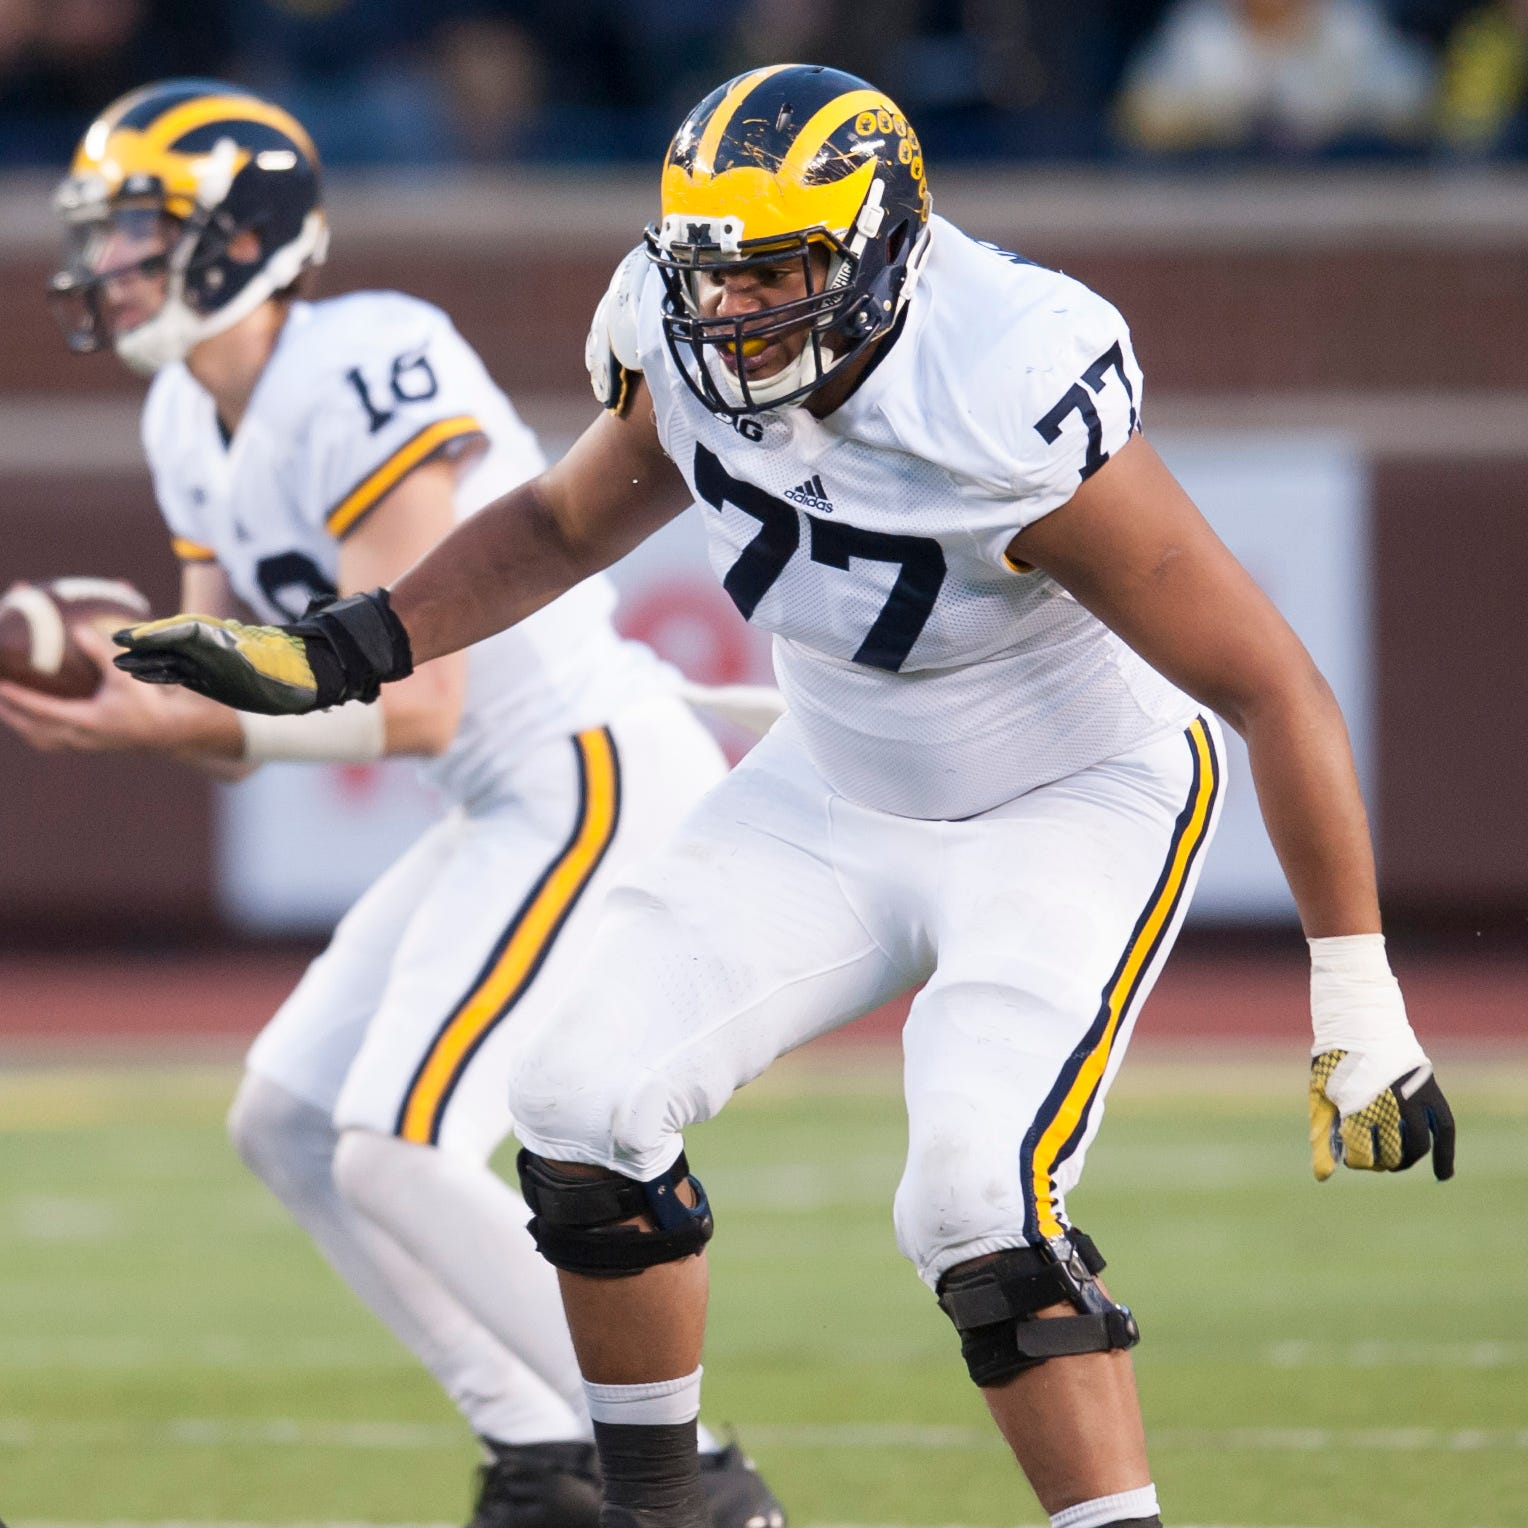 'Totality of injury too much,' Michigan's Grant Newsome retires from football